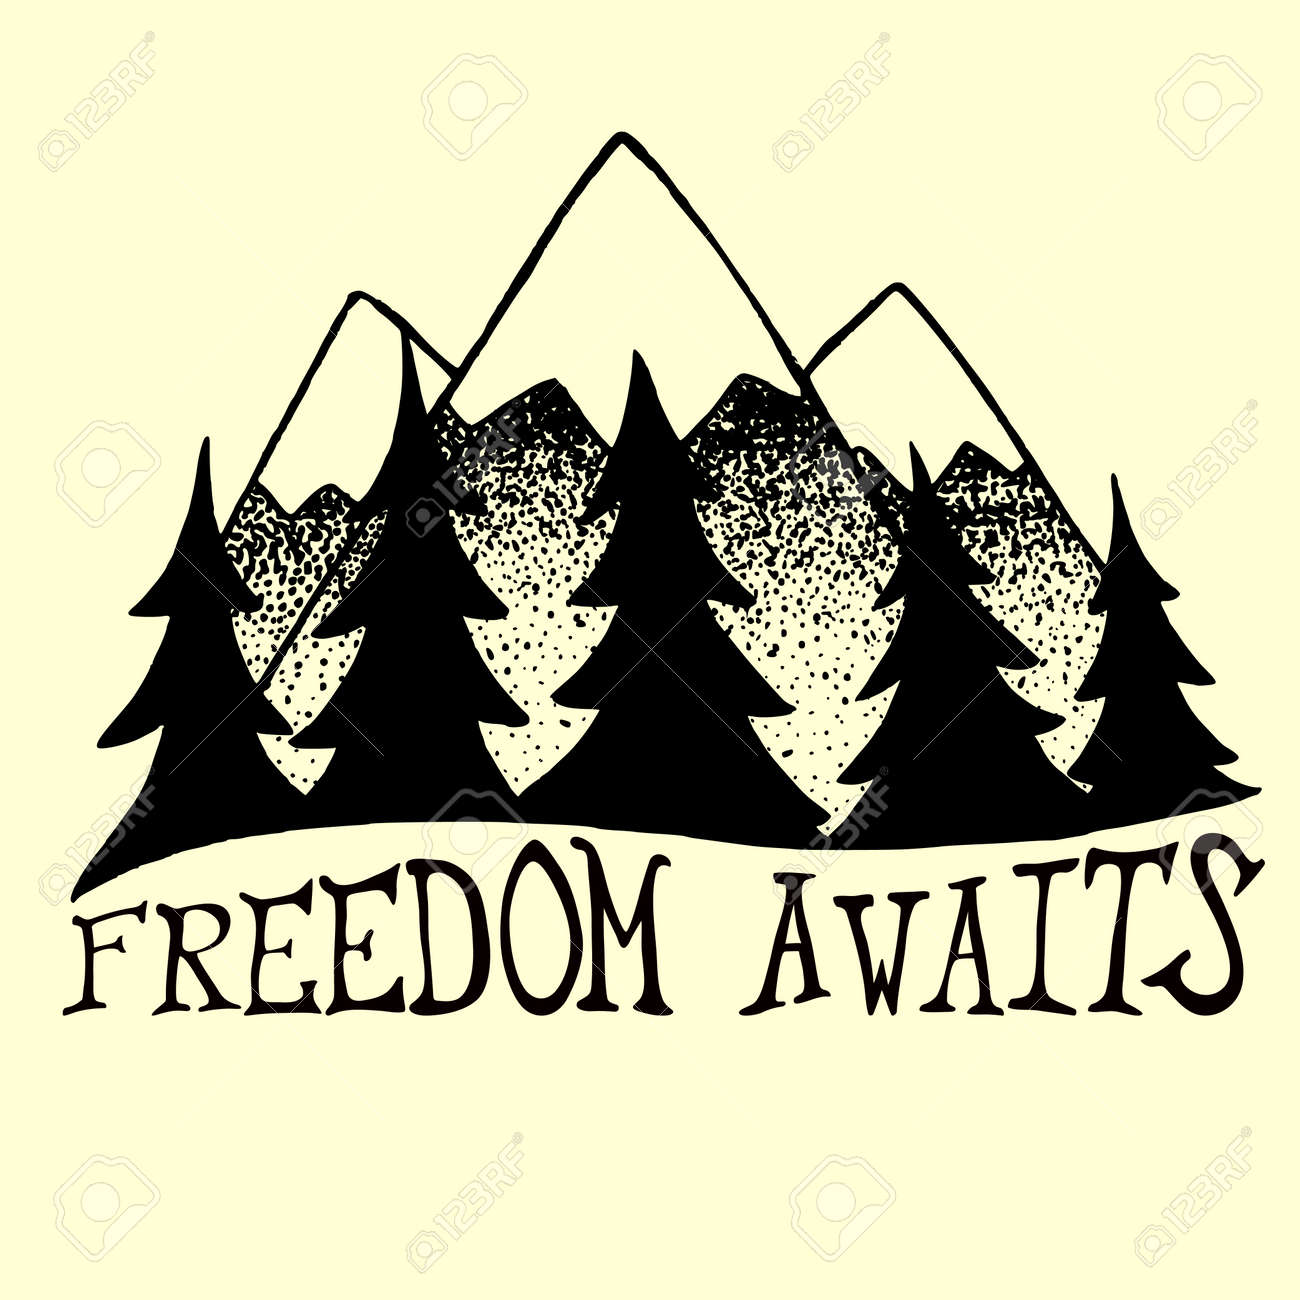 Vector illustration with mountains and pine trees. Freedom awaits. Trendy handdrawn poster with lettering quote, t-shirt design, home decoration. - 60884500